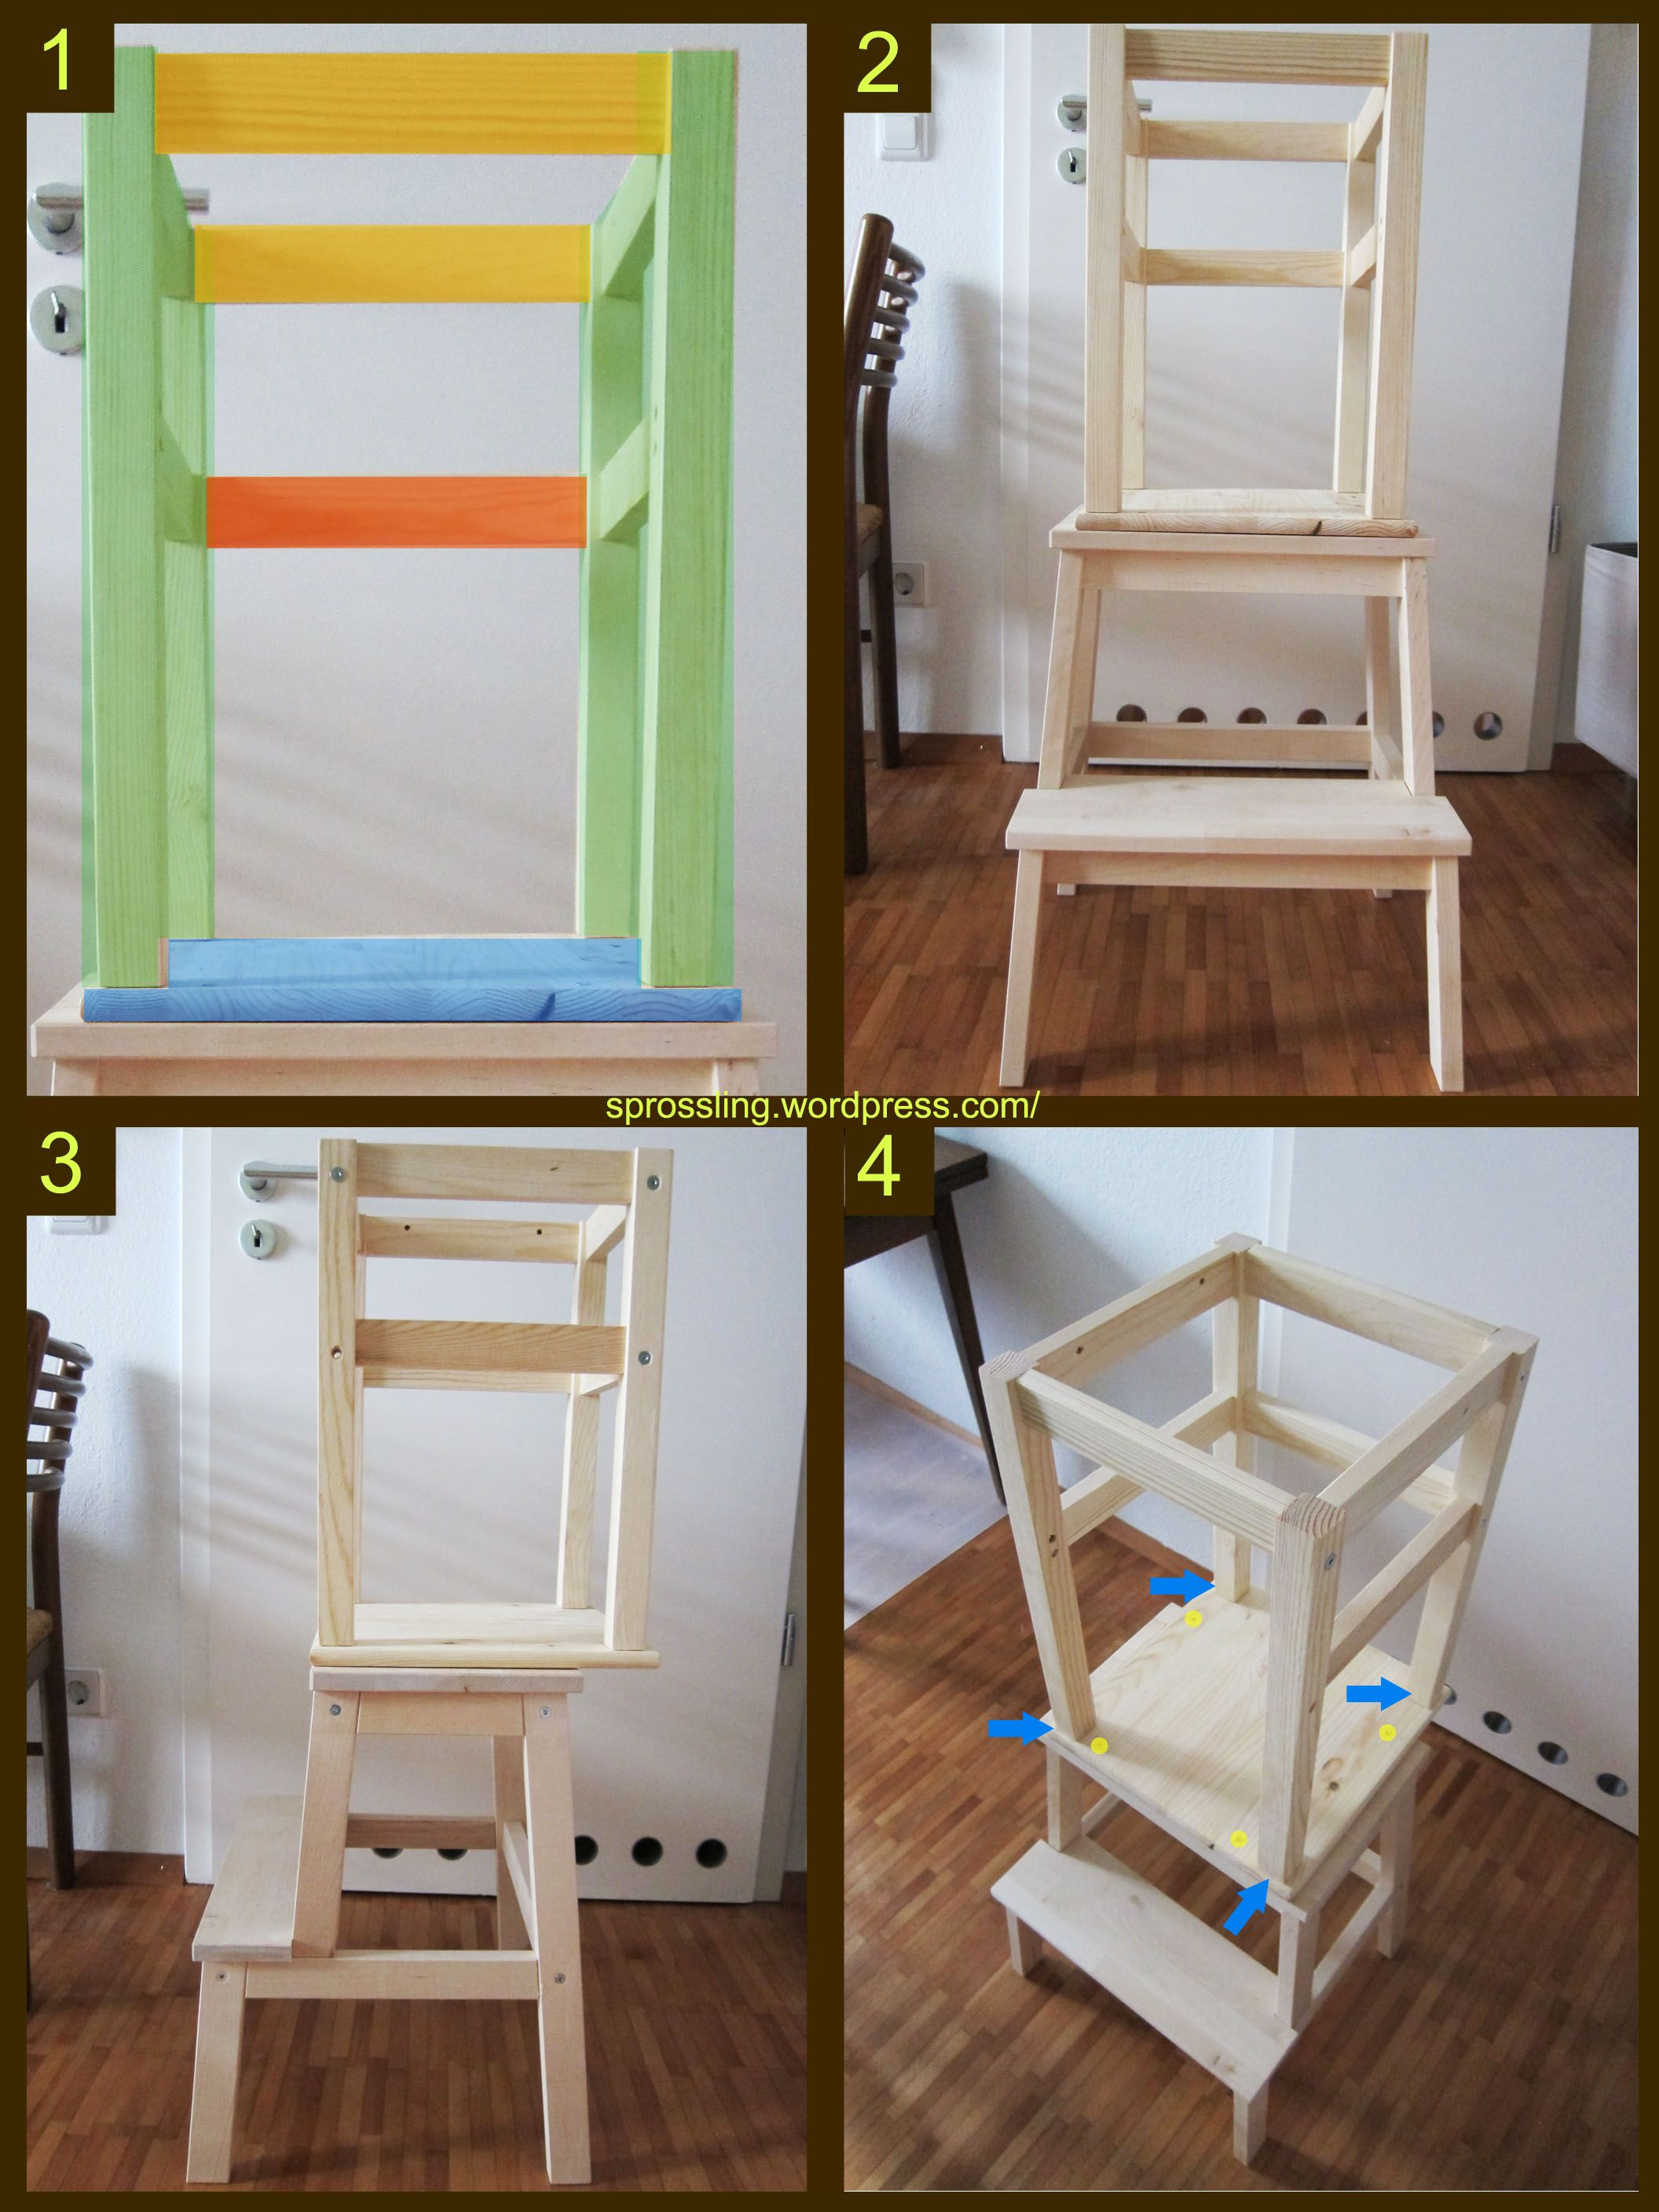 Ikea Hacks Lernturm Der Lerntum-hack (learning Tower) | Deco Home | Learning